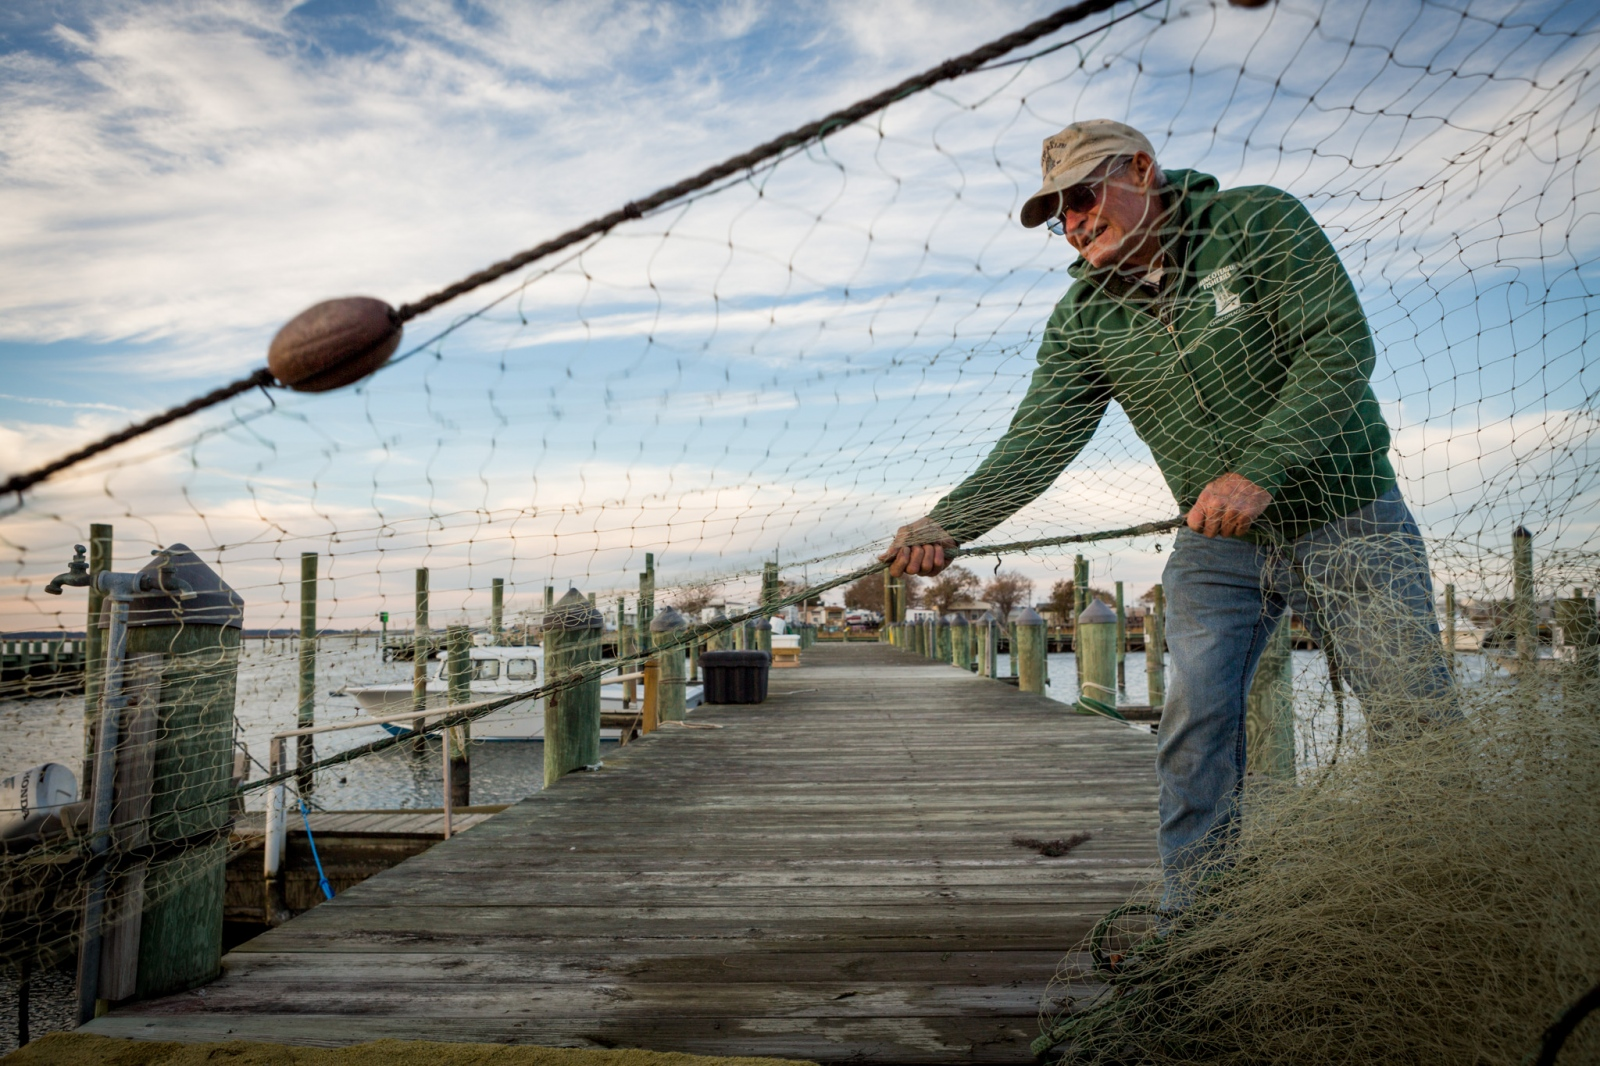 Fisherman in Chincoteague, VA. From an assignment for Point 97 and the MARCO Portal project profiling fisheries on the Mid-Atlantic coast, USA.